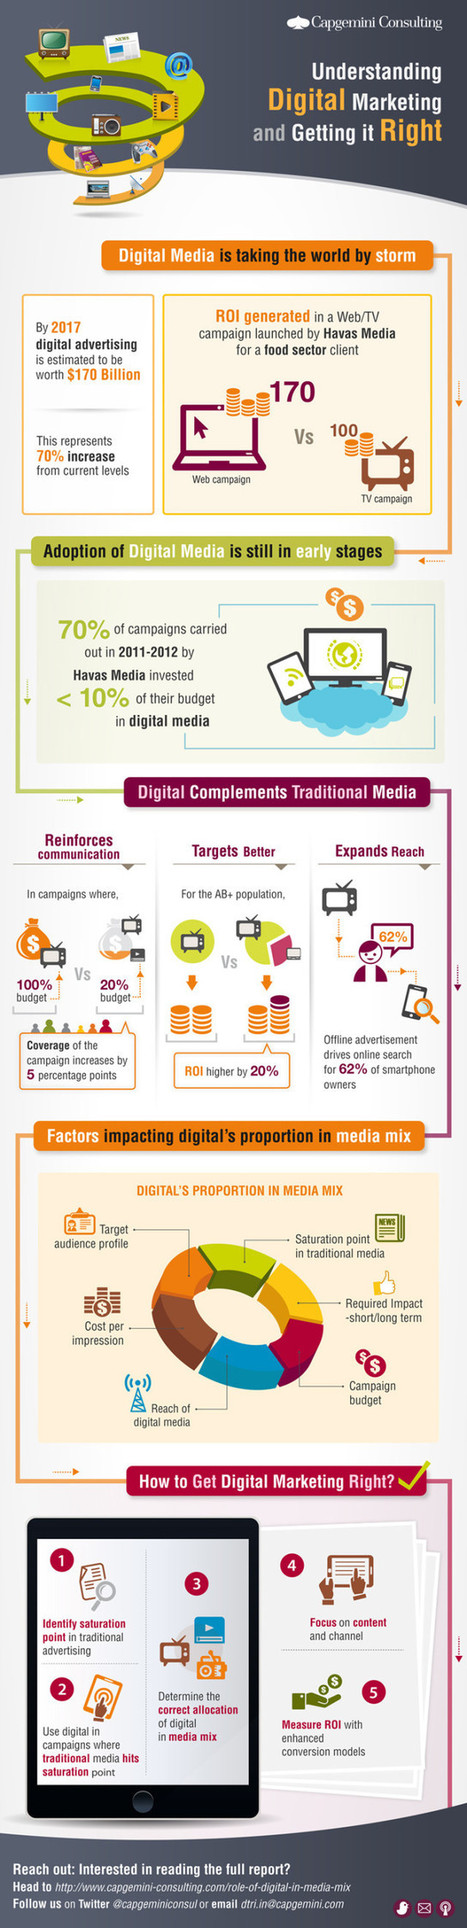 Infographic: The Role of Digital Media in Marketing | Digital Marketing | Scoop.it